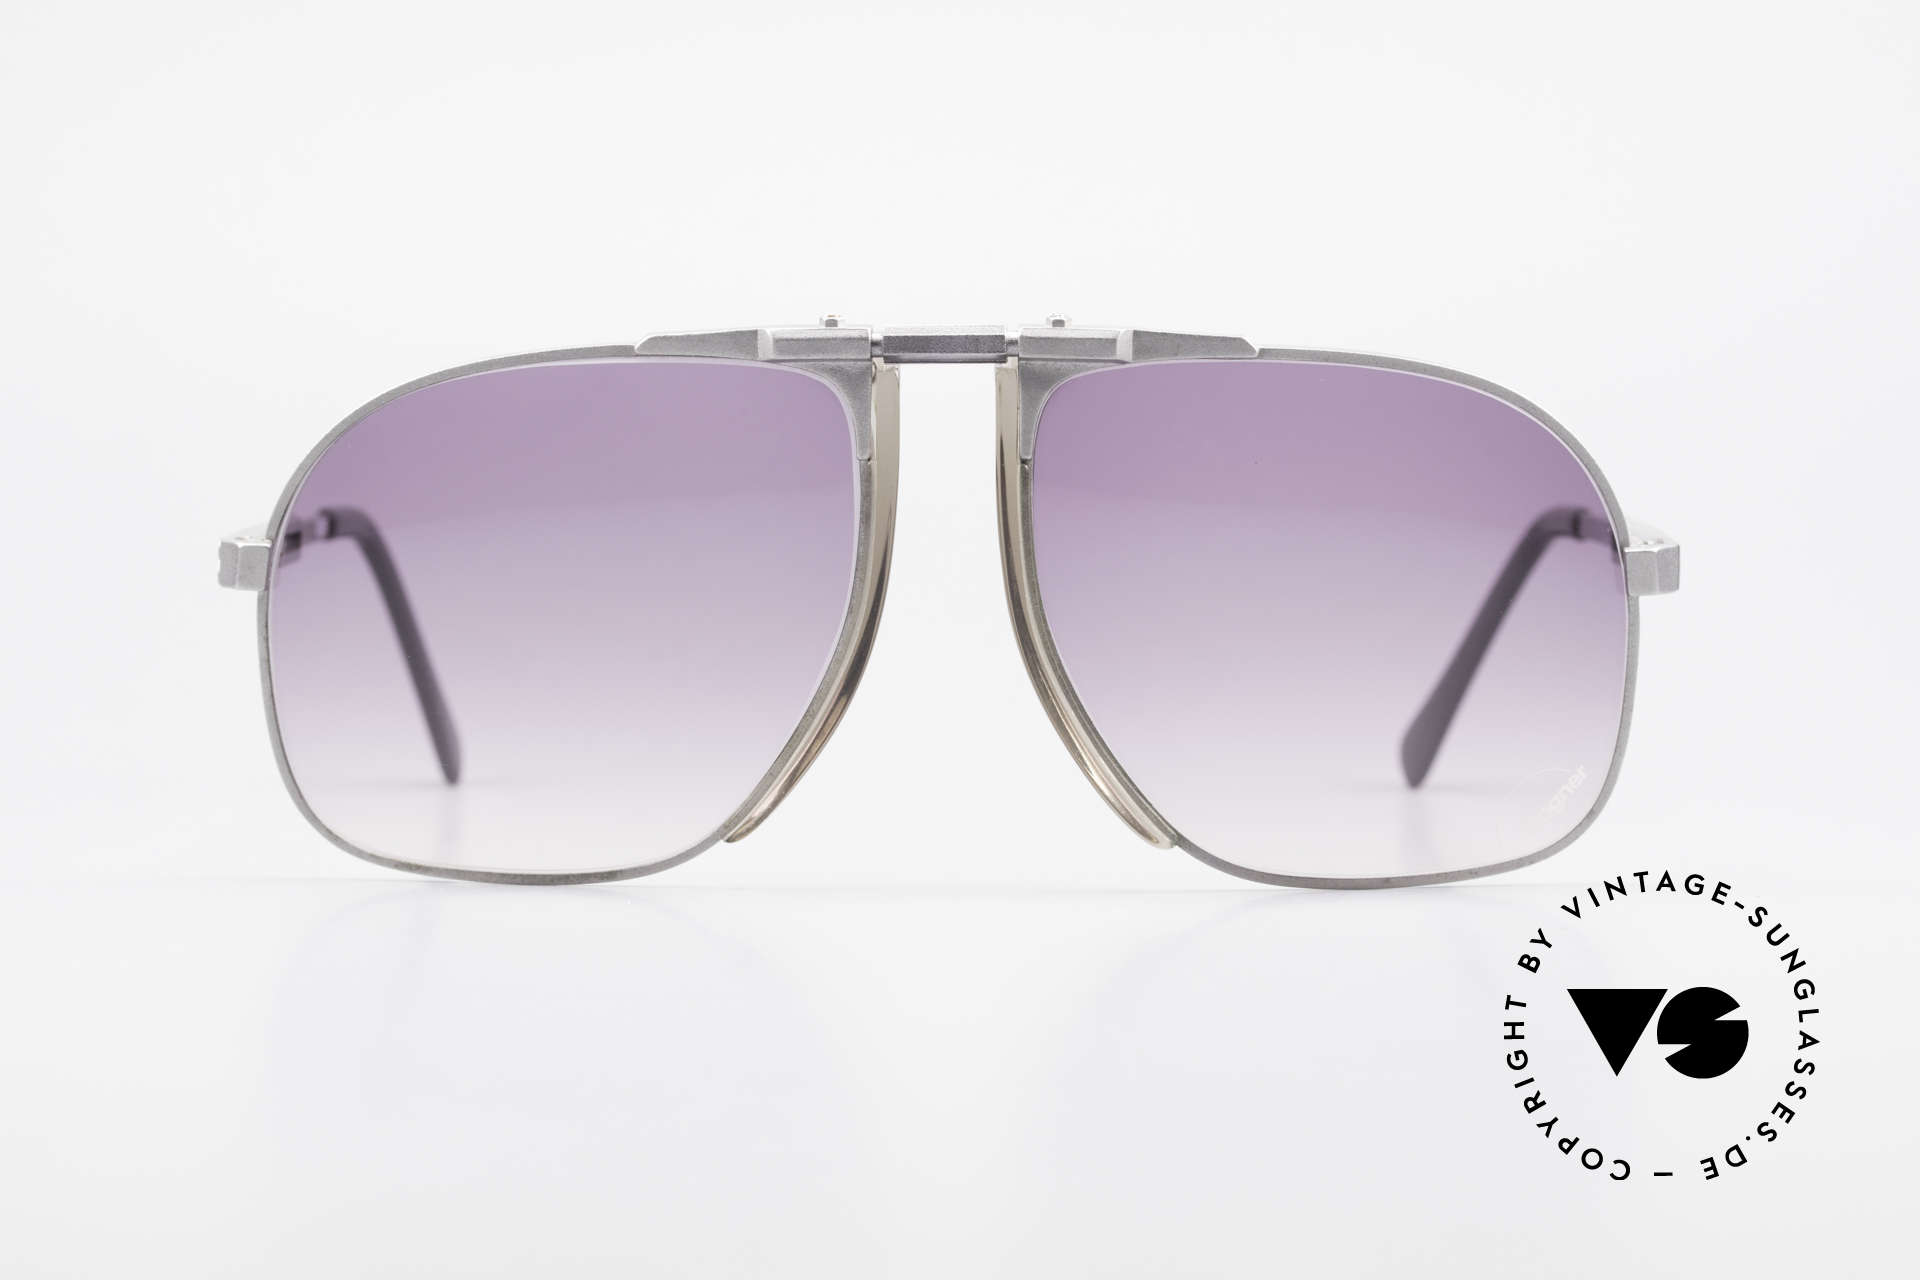 Willy Bogner 7023 Adjustable Sunglasses 80's, steplessely variable temples by Eschenbach; practical, Made for Men